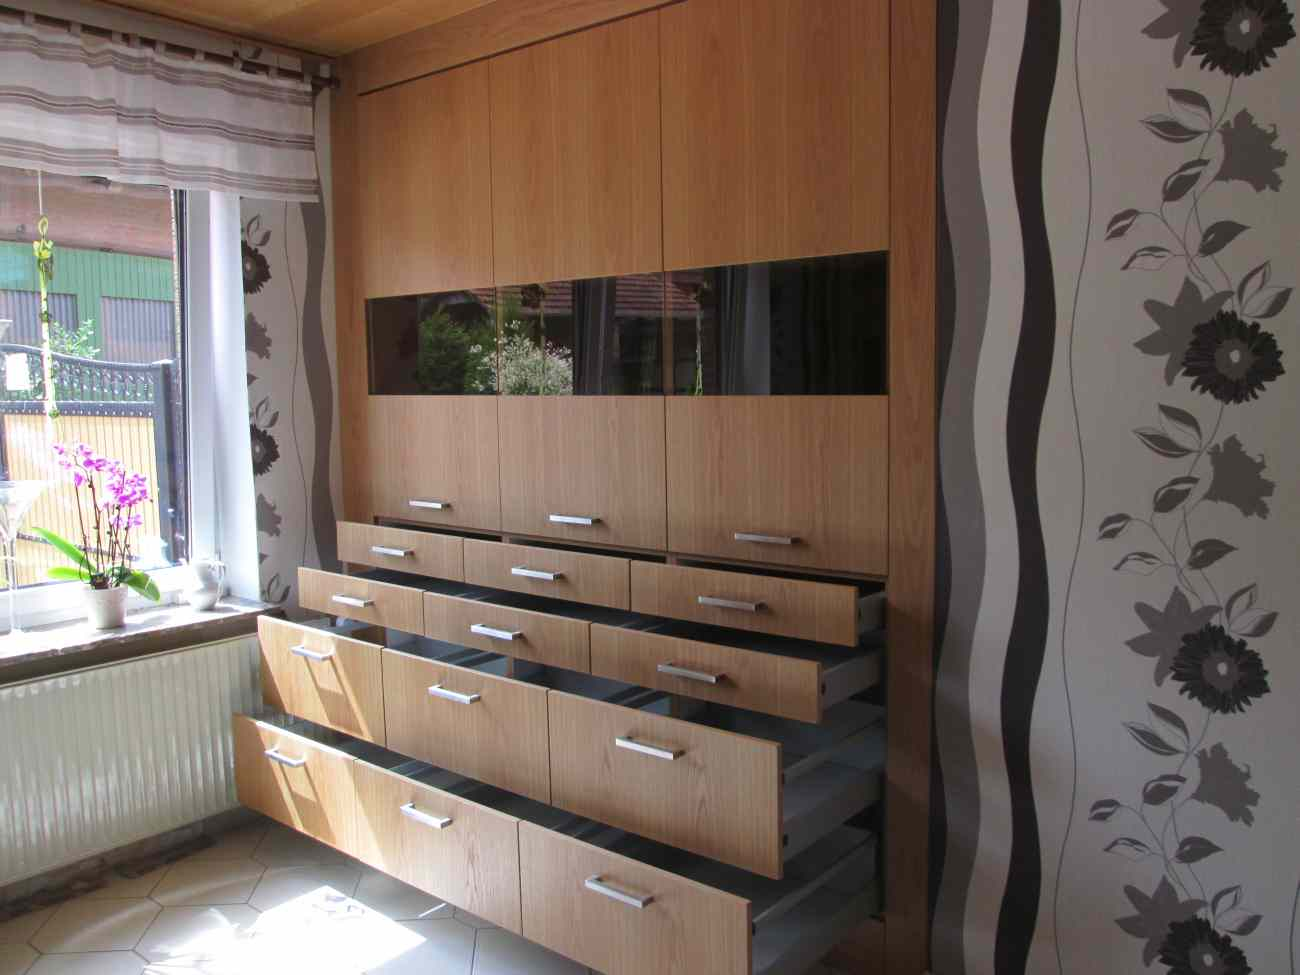 wohnzimmer 013 tischlerei albers. Black Bedroom Furniture Sets. Home Design Ideas